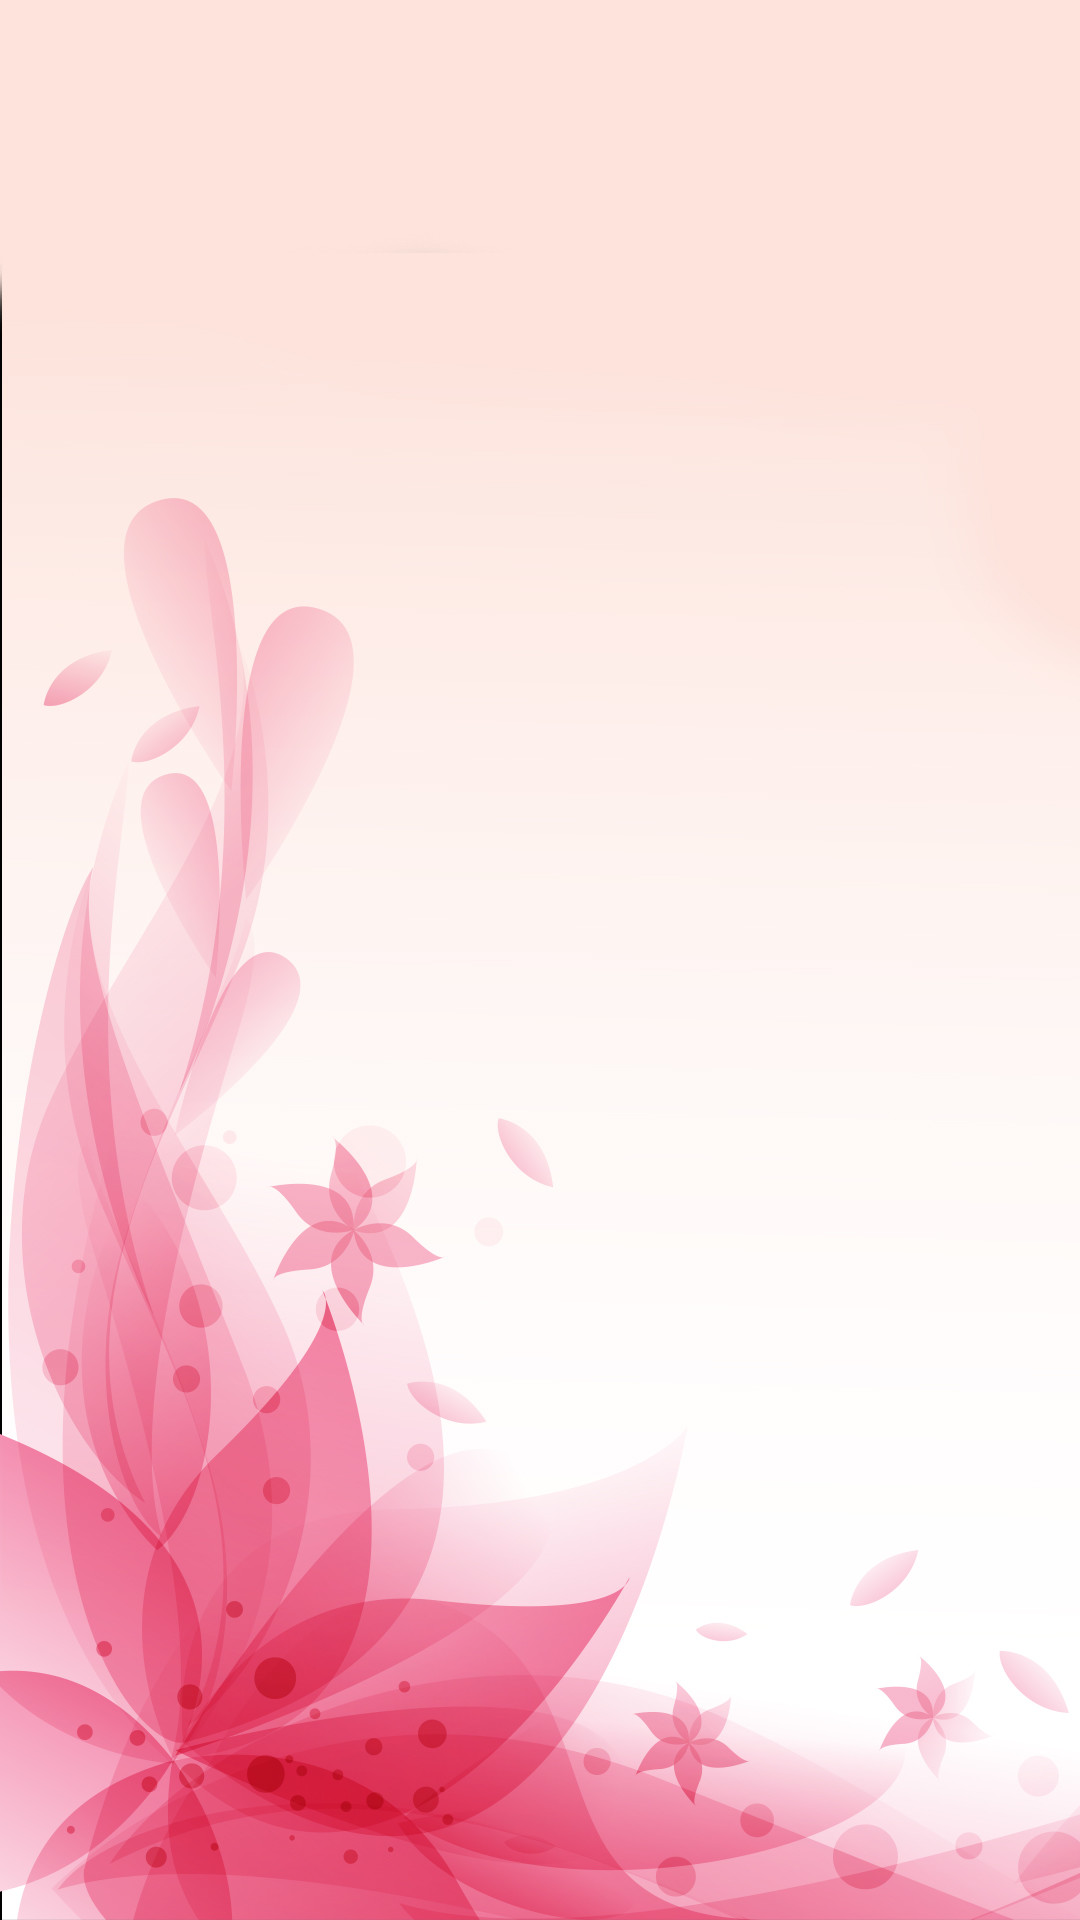 Cute Holographic Wallpapers Really Cute Backgrounds 183 ①